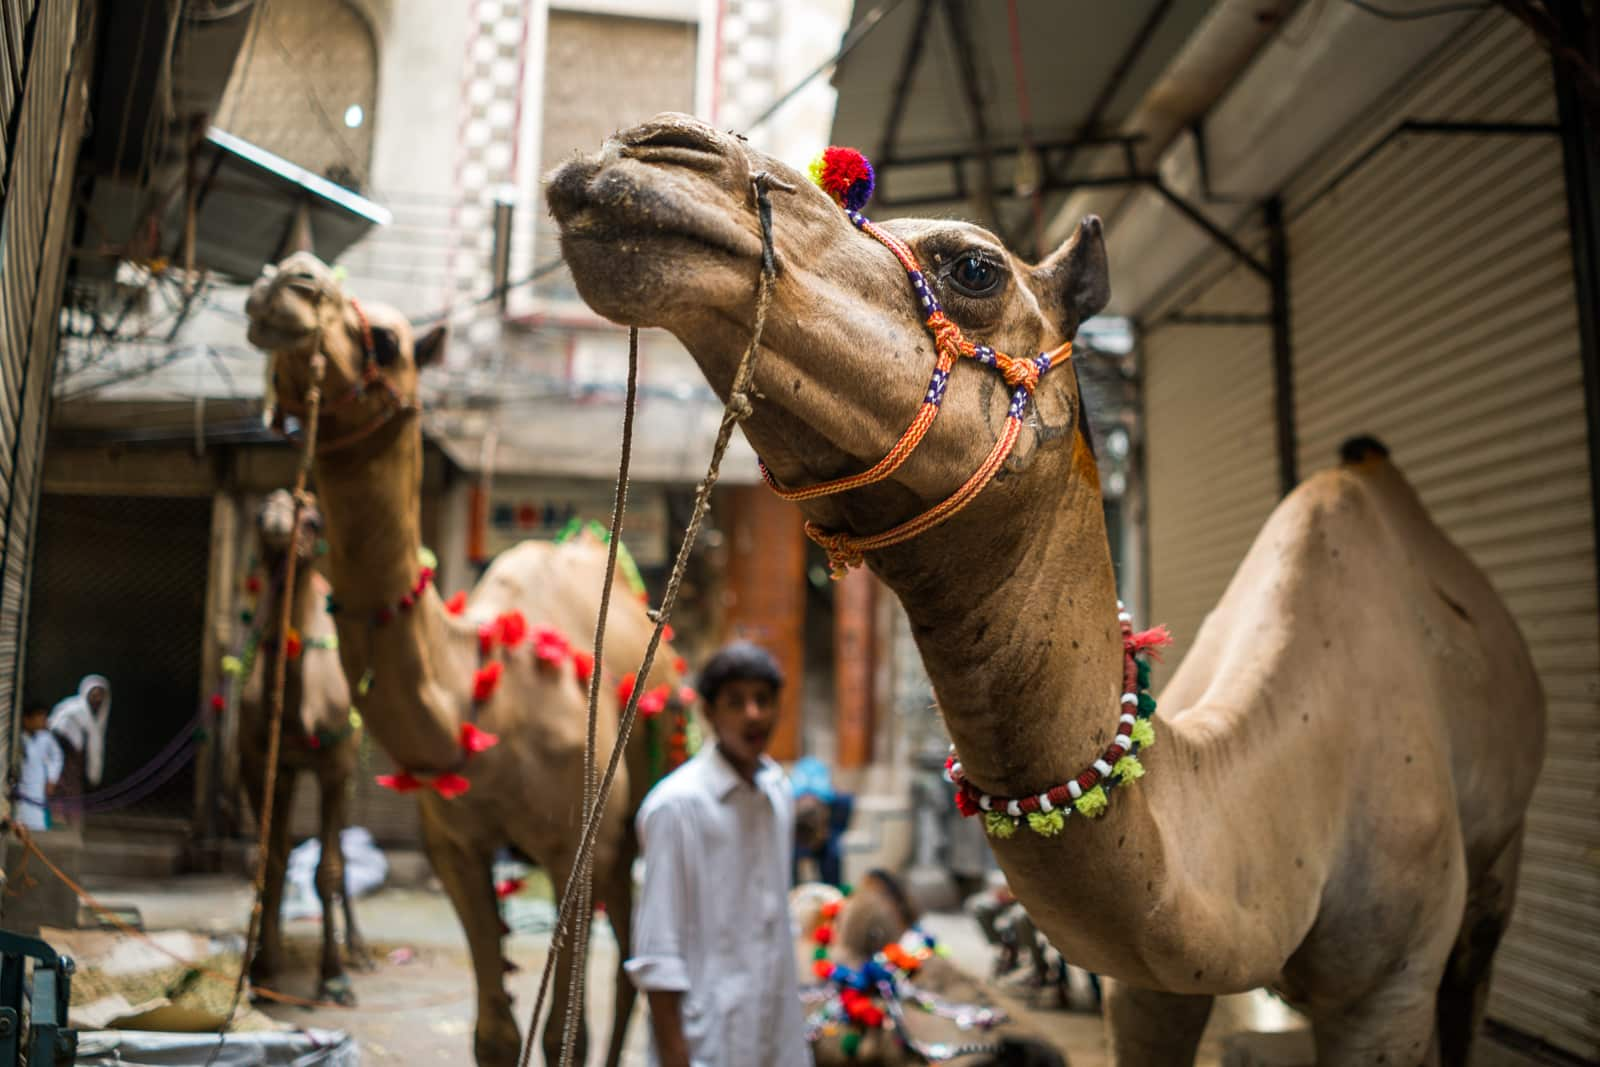 Celebrating Eid al-Adha in Lahore, Pakistan - Several camels tied up on the street - Lost With Purpose travel blog